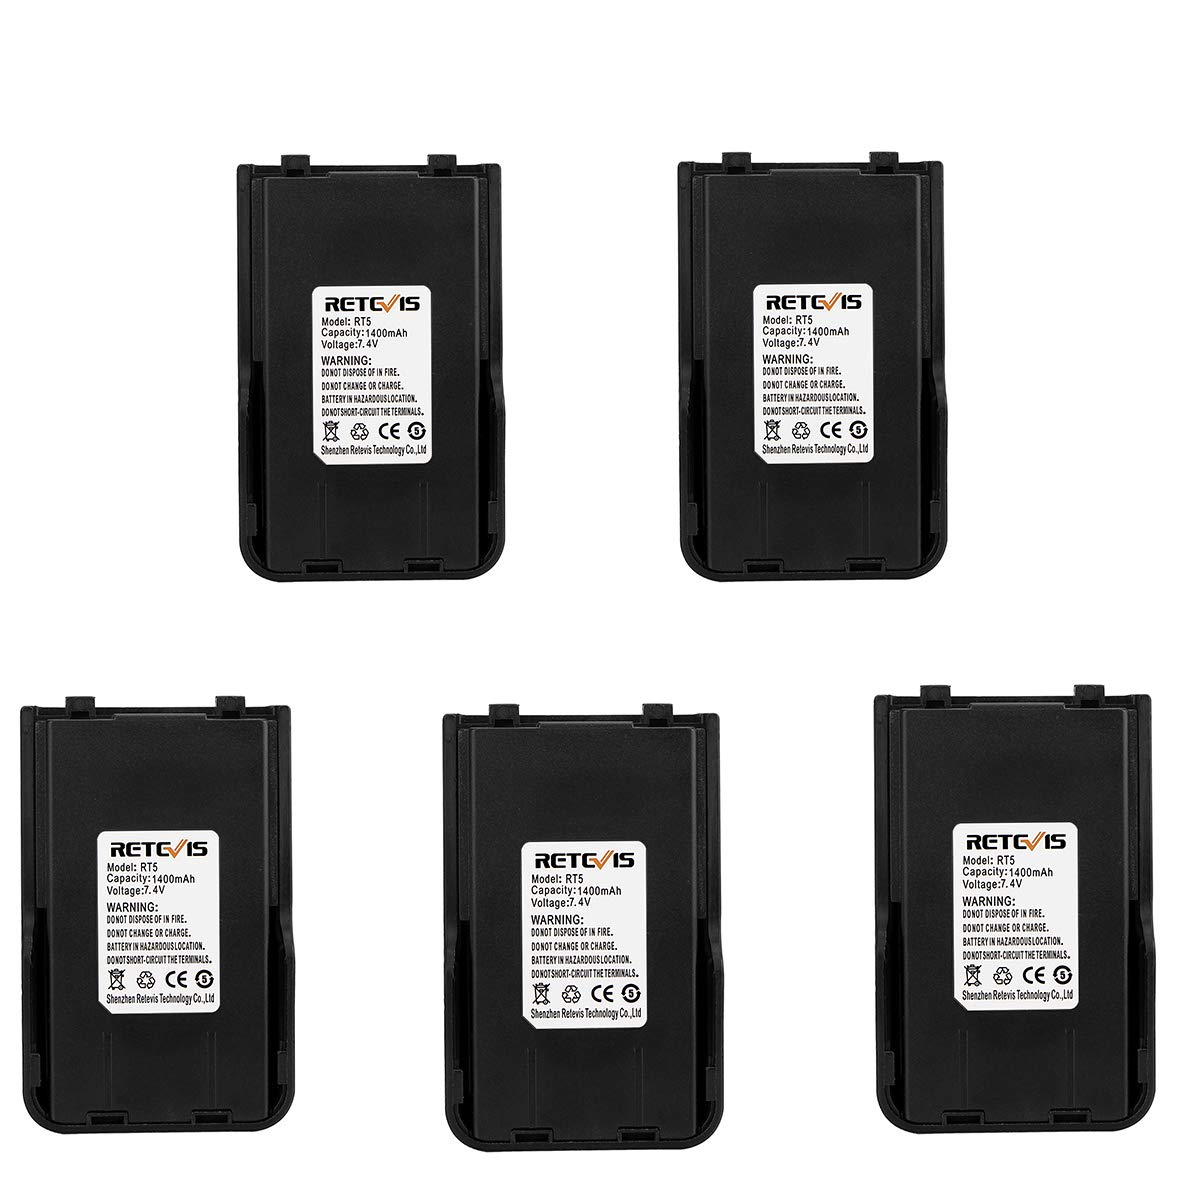 Retevis Two-way Radio Battery 1400mAH Replacement Rechargeable Battery Compatible Retevis RT5 Walkie Talkies (5 Pack)